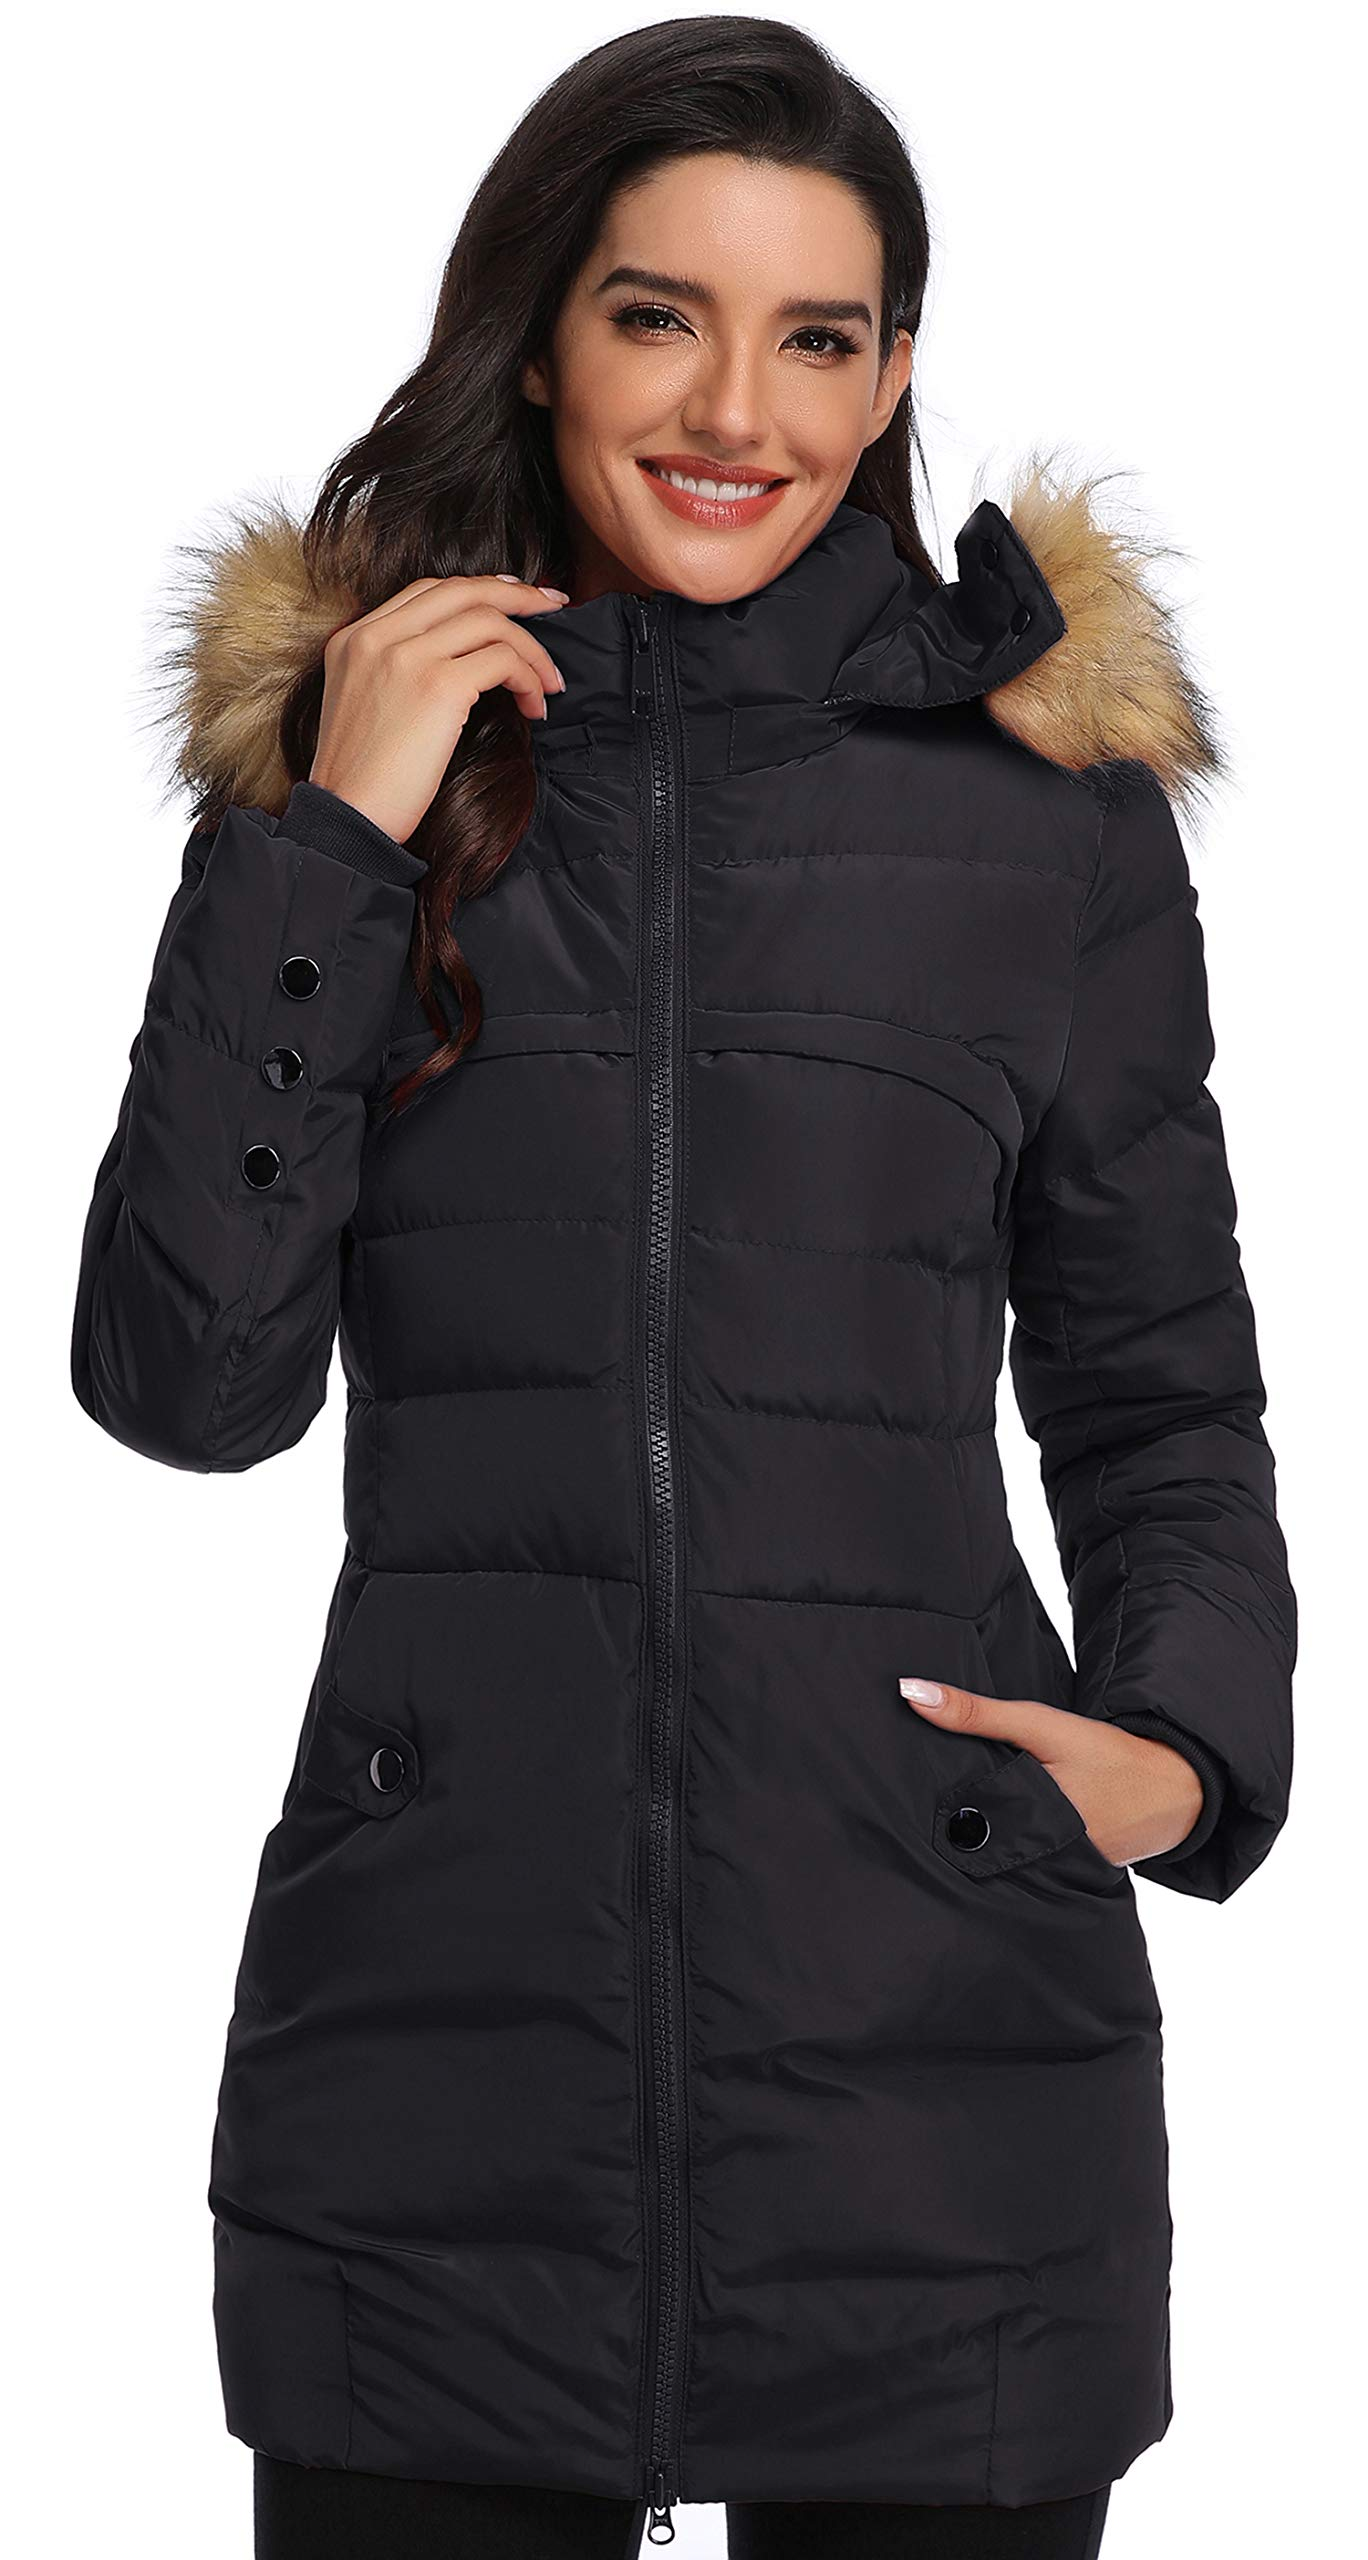 Epsion Women's Hooded Thickened Long Down Jacket Winter Down Parka Puffer Jacket (Black, XS) by Epsion